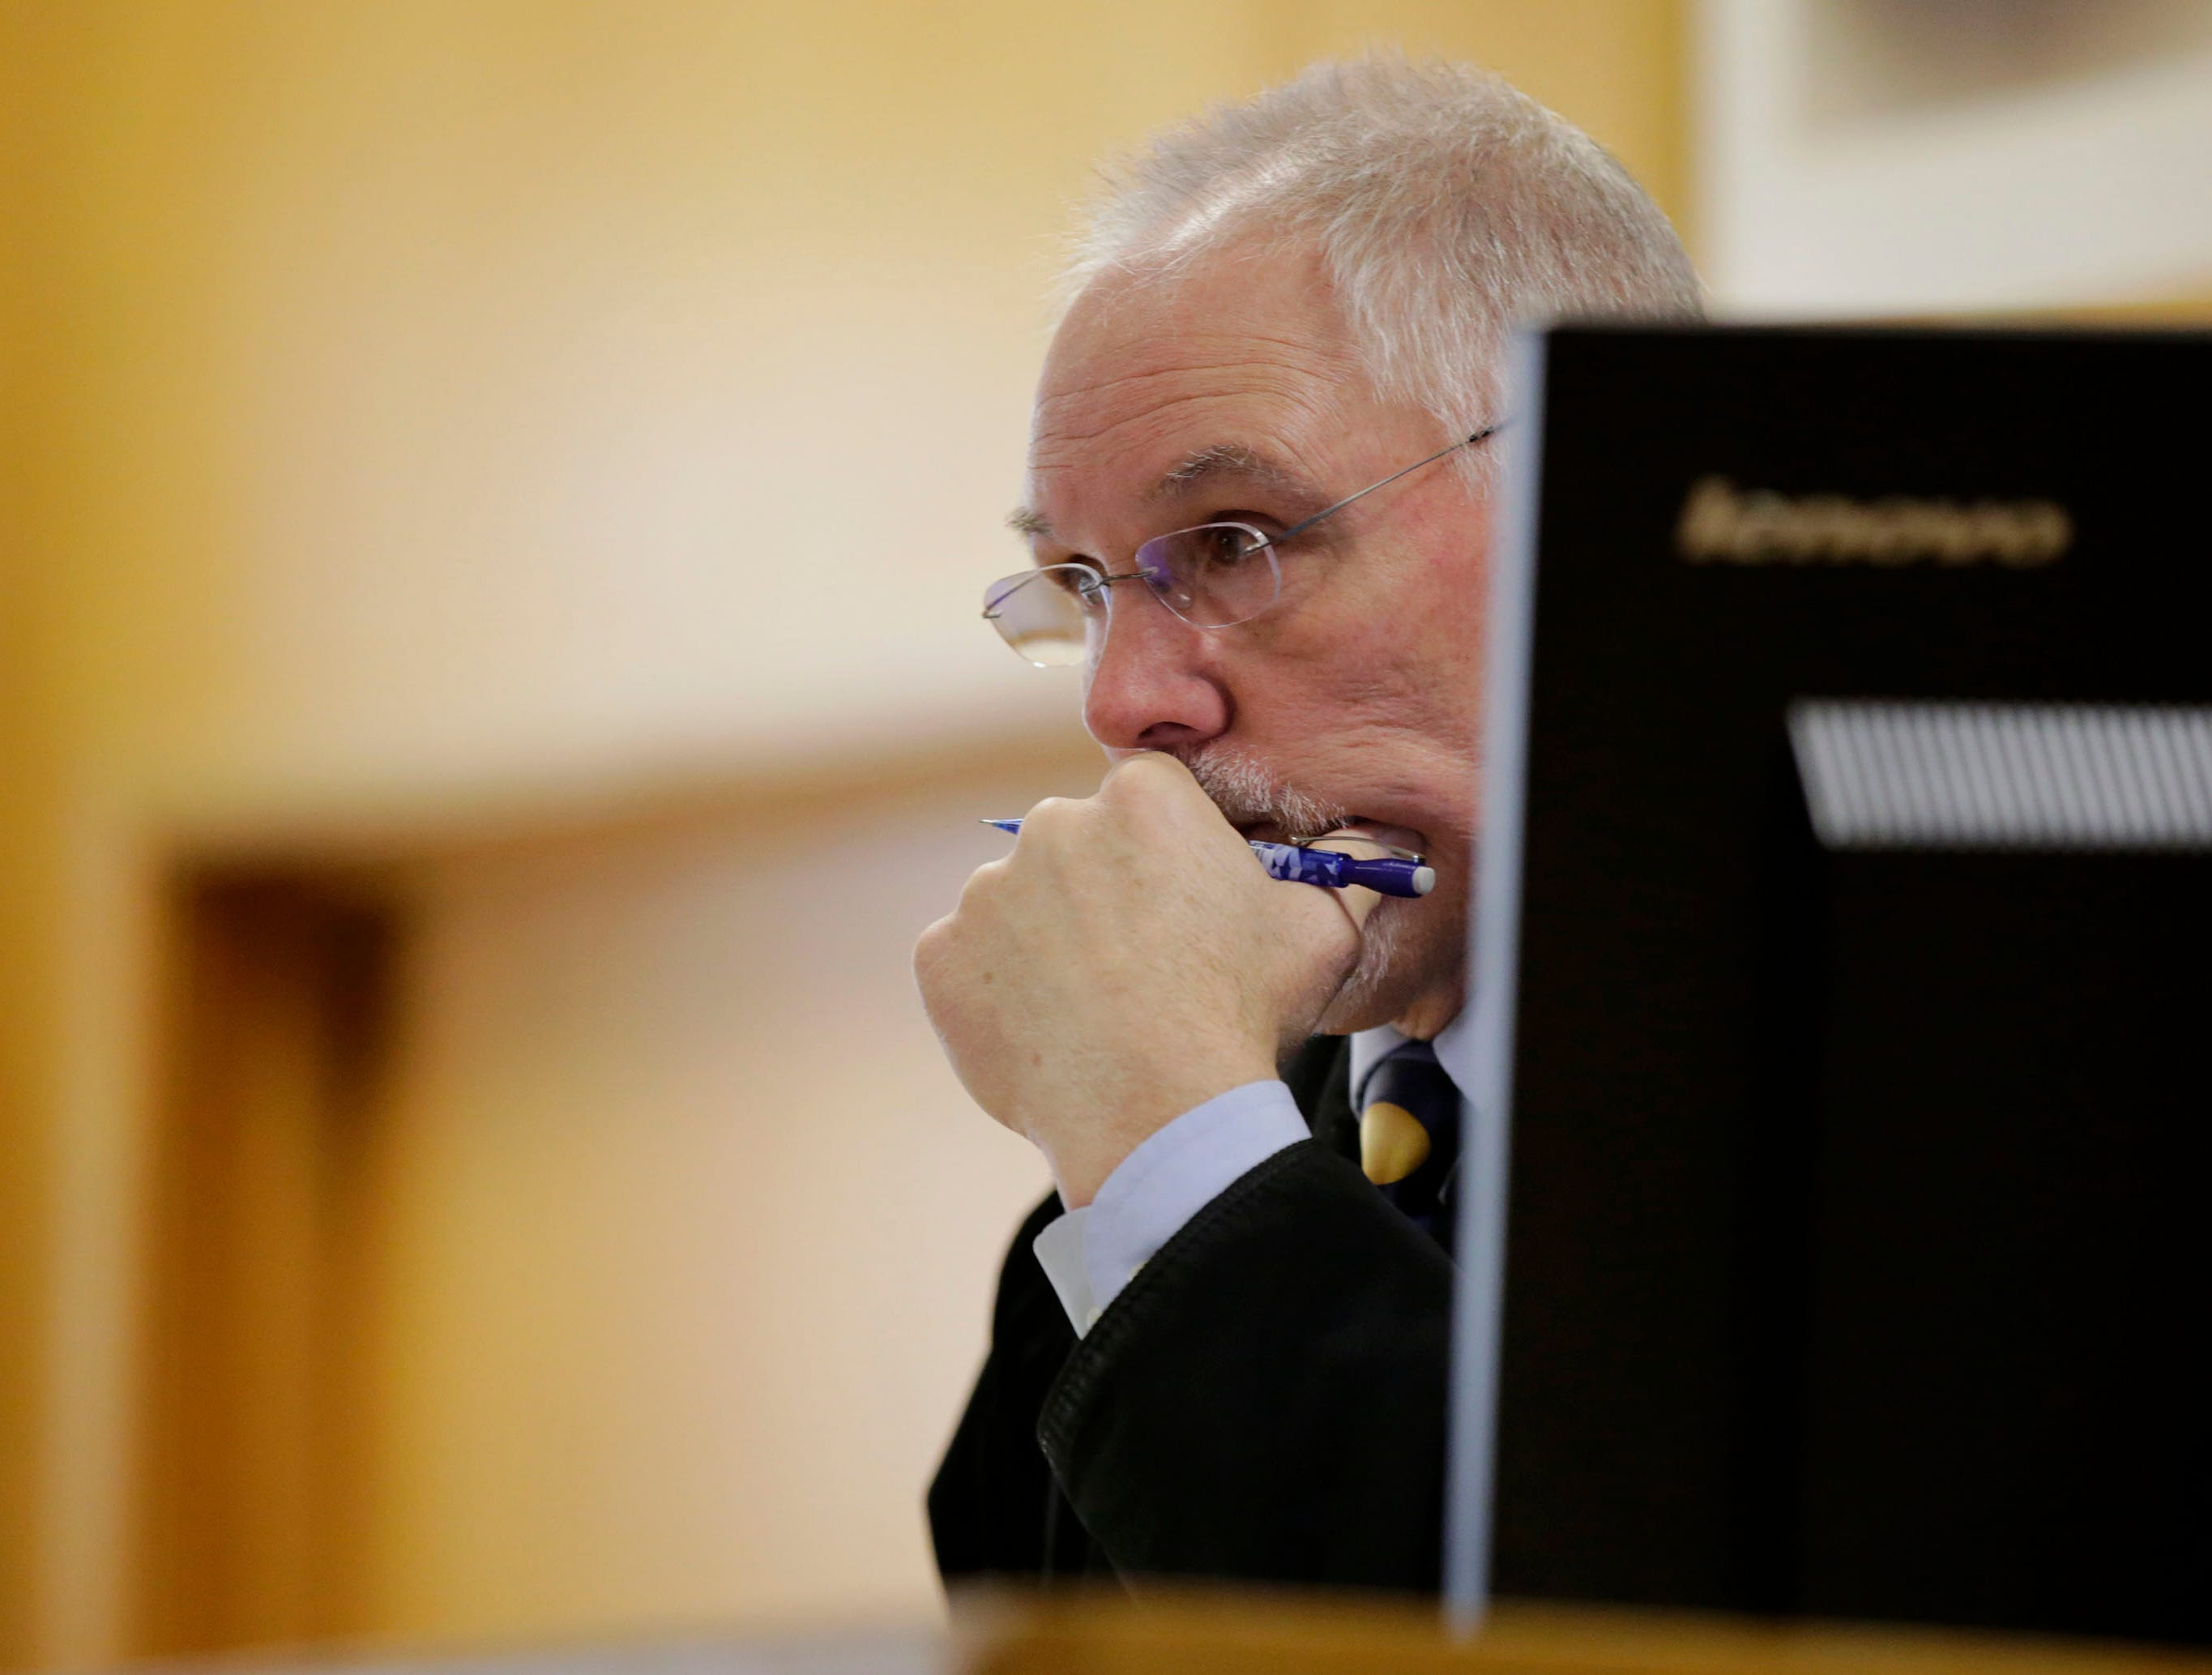 Wood County Circuit Judge Greg Potter listens to testimony during a sentencing hearing on Tuesday, December 18, 2018, at the Wood County courthouse in Wisconsin Rapids, Wis.Tork Mason/USA TODAY NETWORK-Wisconsin